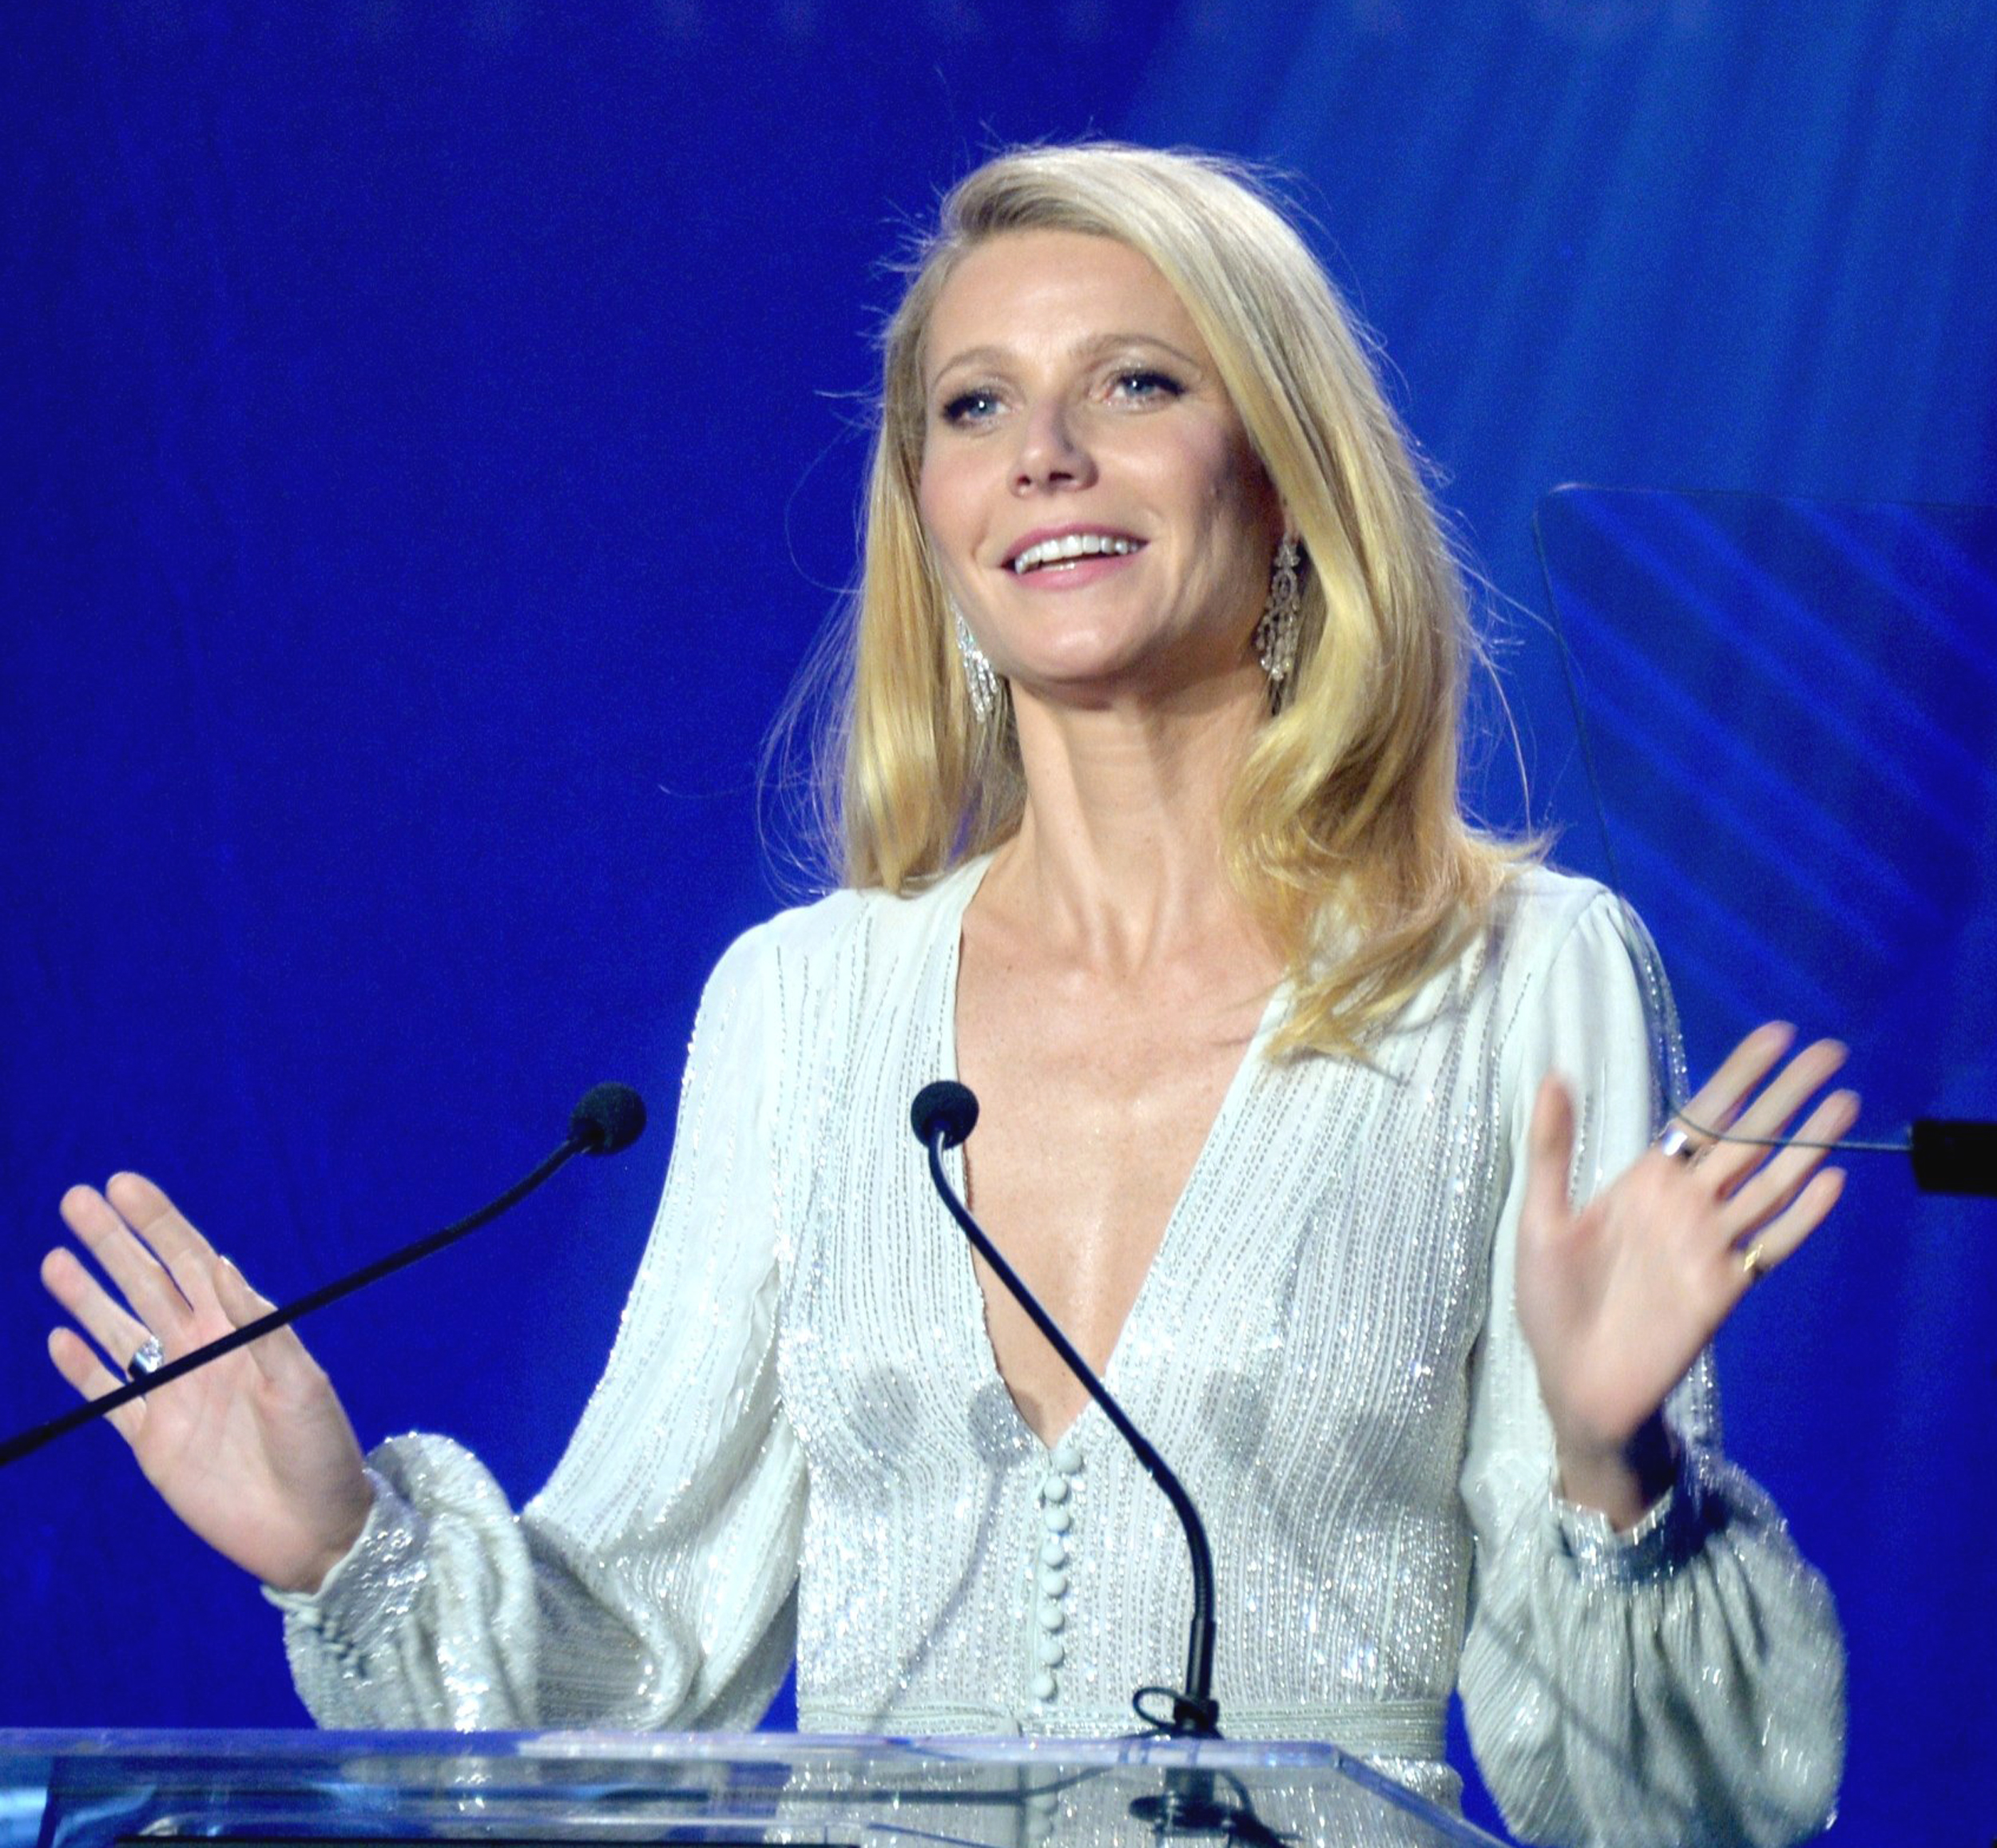 Gwyneth Paltrow's Goop Accused of 'Deceptive' Health Claims